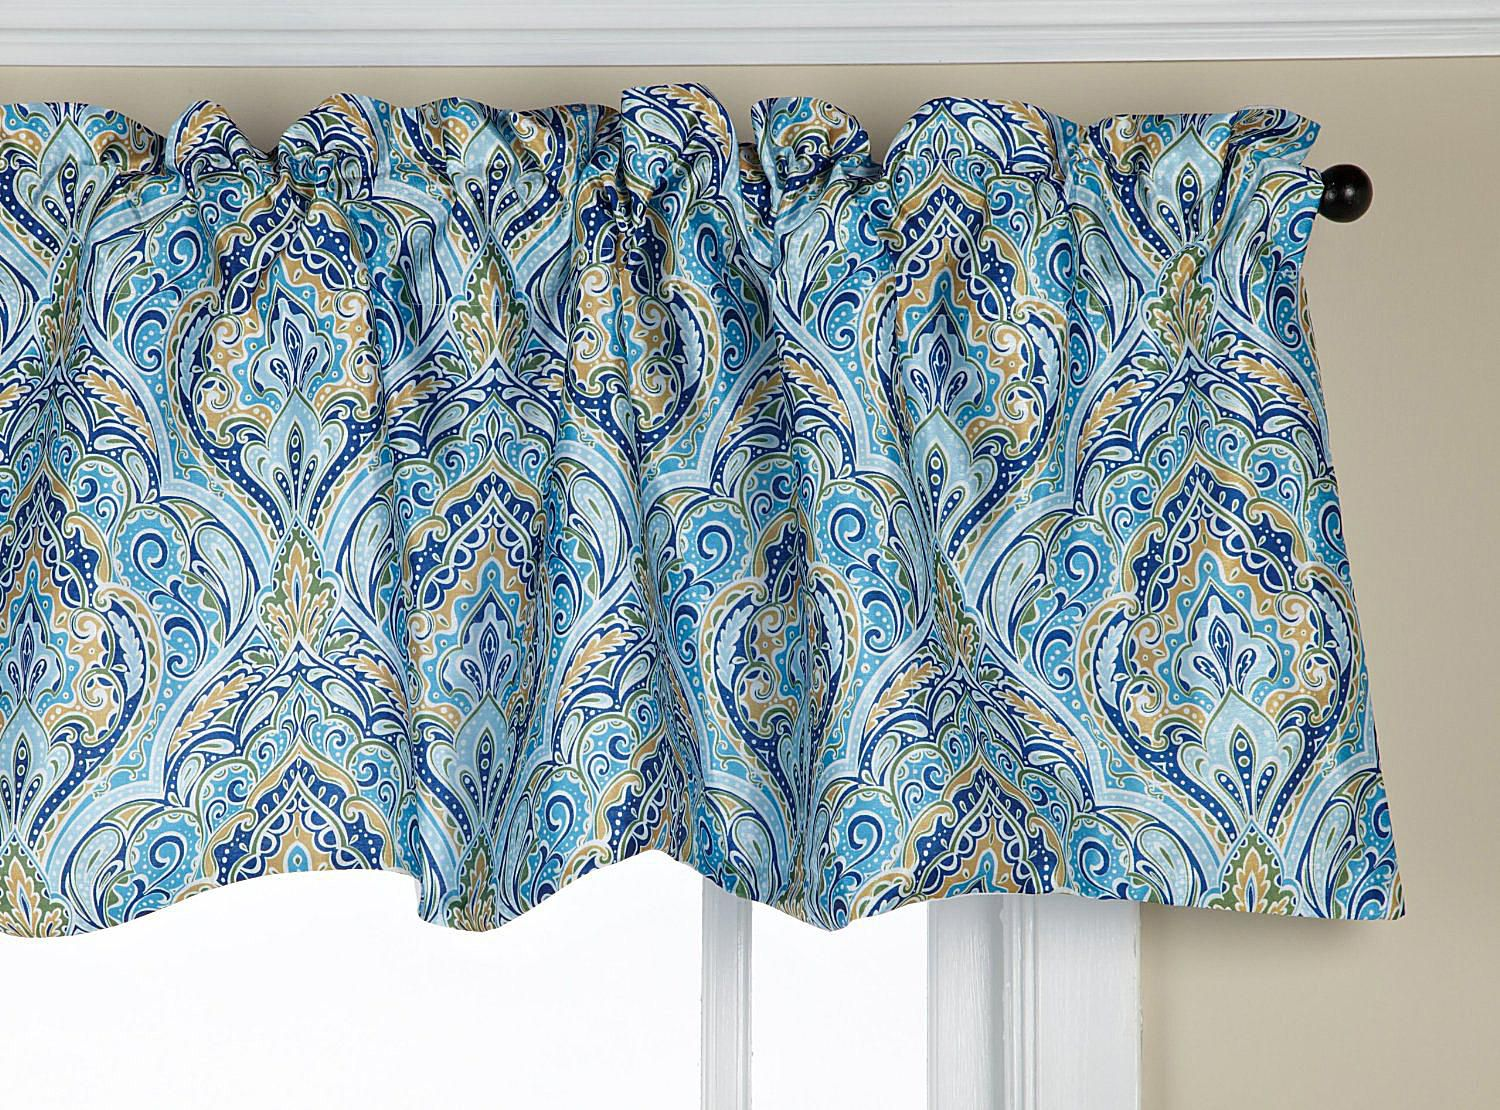 cornices mist valance t flower board for desert shipping free today blinds window curtain cornice